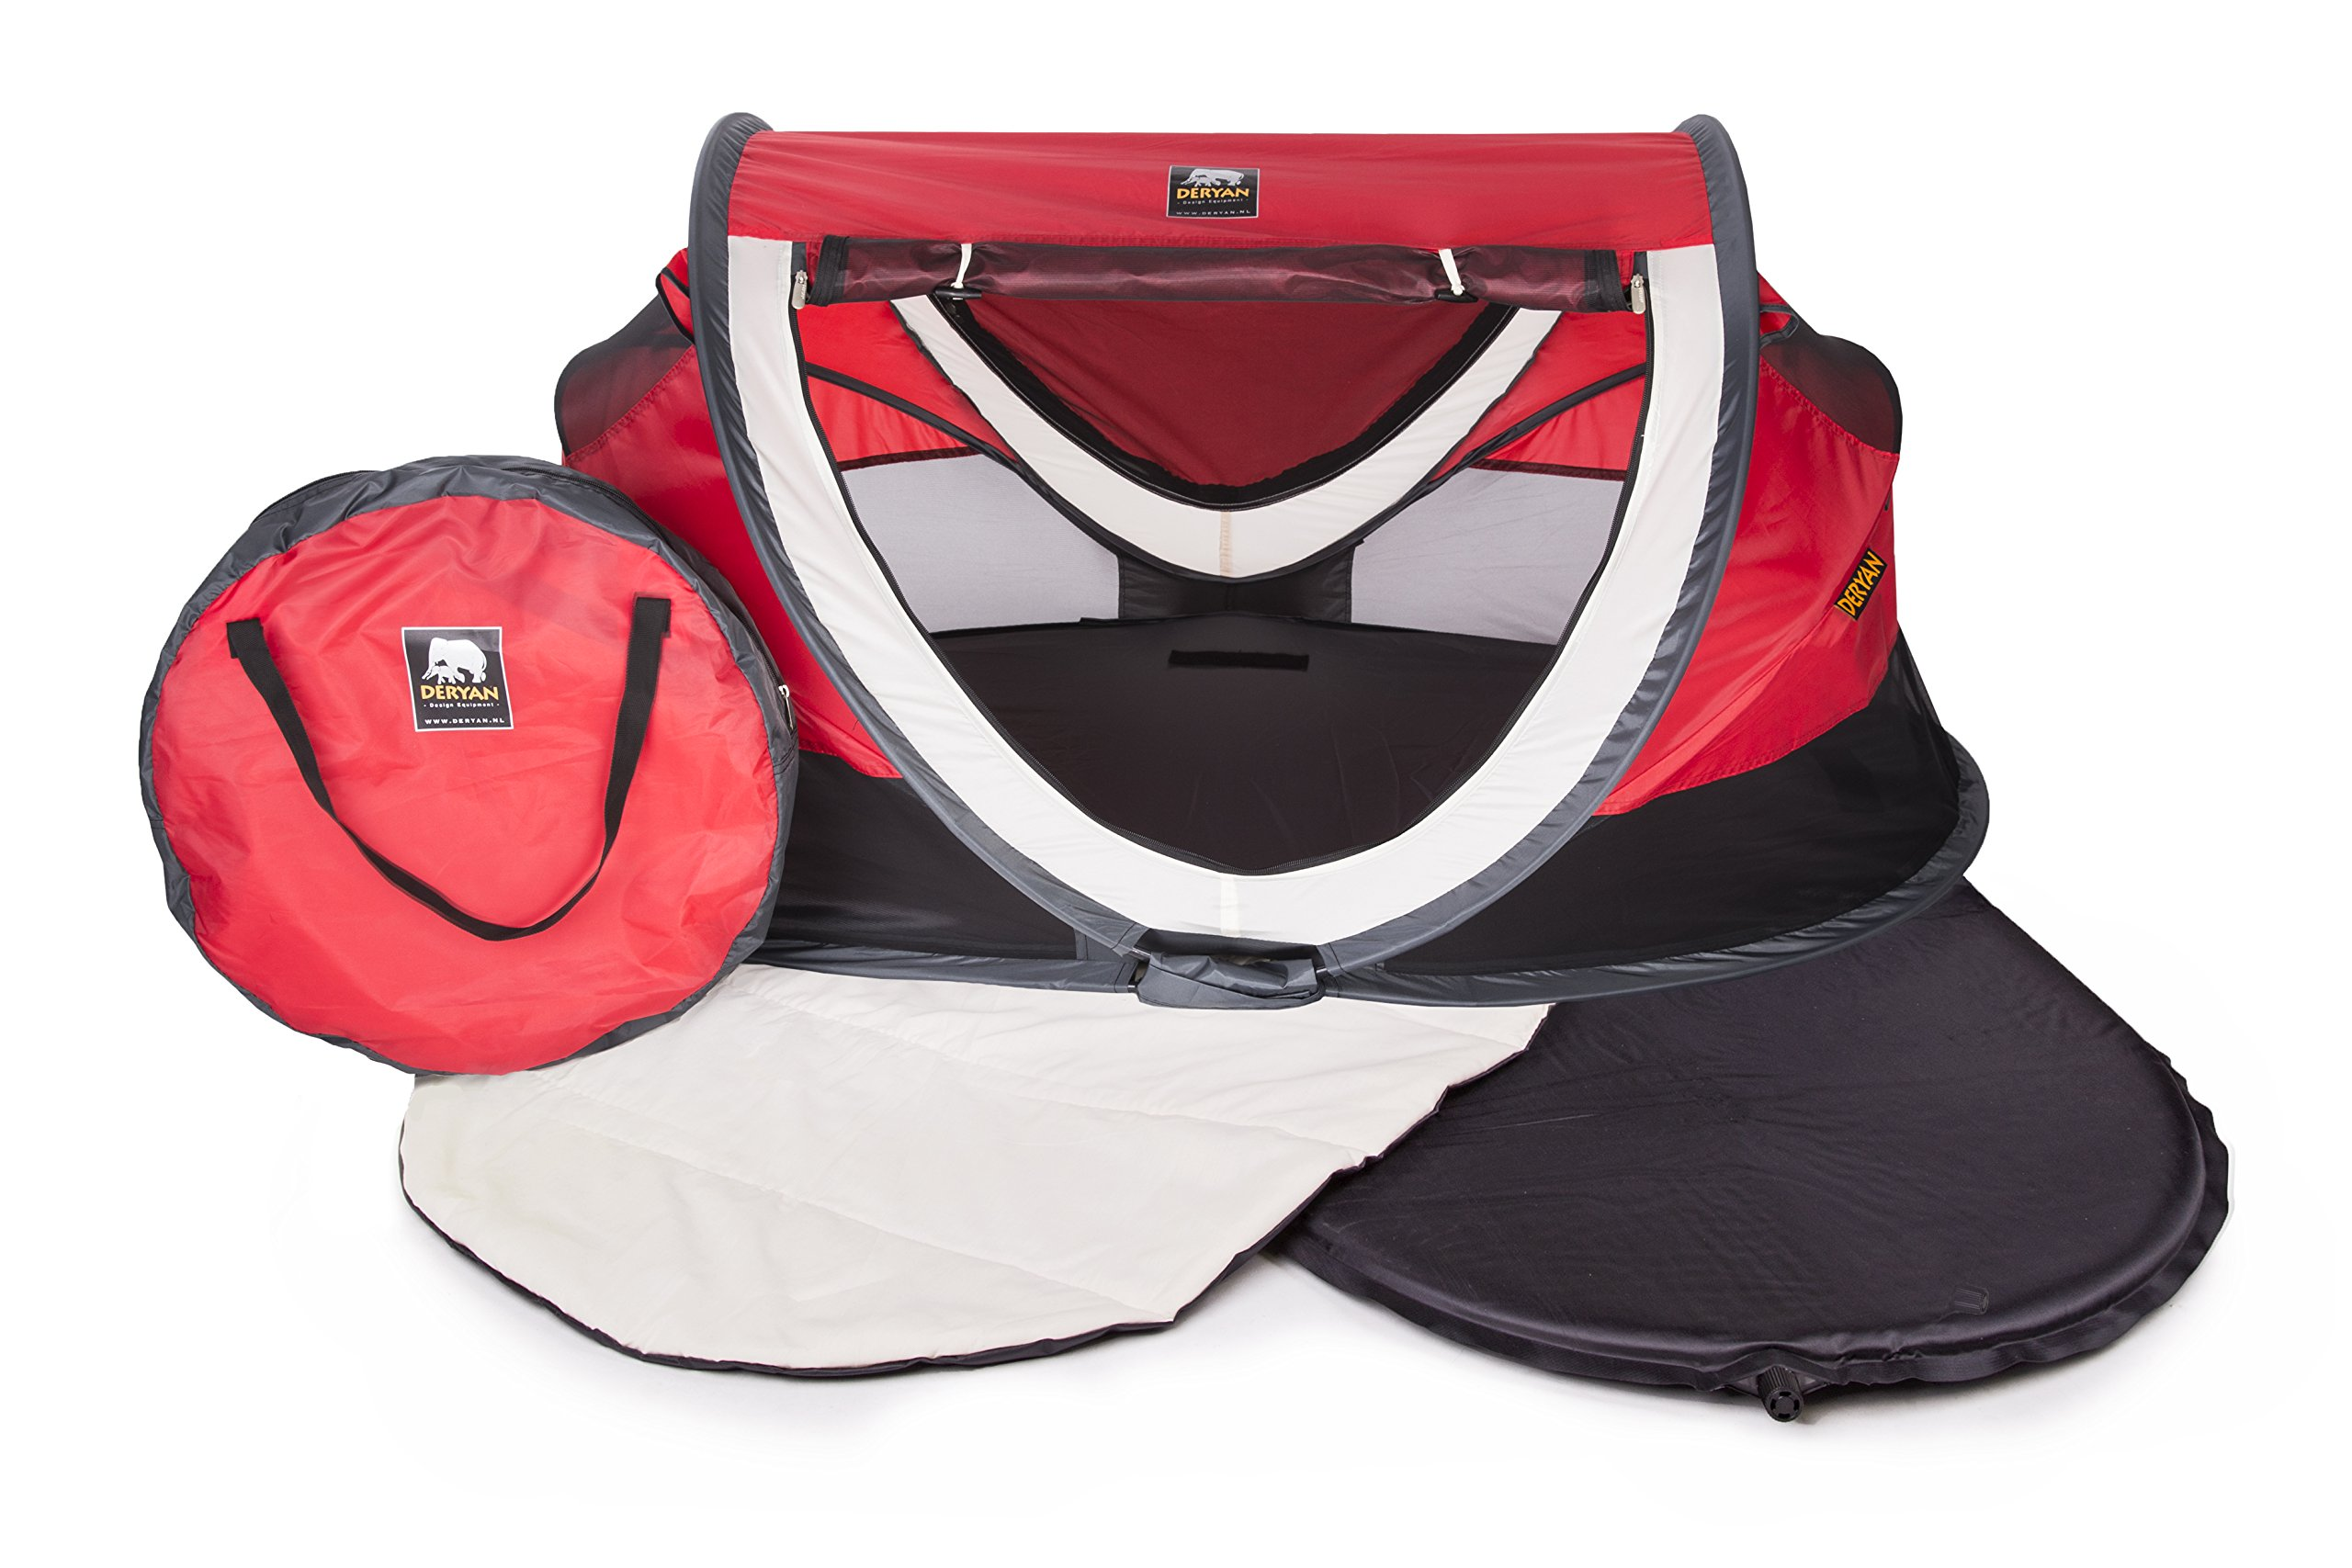 Travel Cot Peuter Luxe (Red) Deryan Perfect for the beach, the park or the back garden for playing in or for naps Can Pops up immediately, no poles or fiddly frames to put together. Lightweight and compact in its zip up bag 5